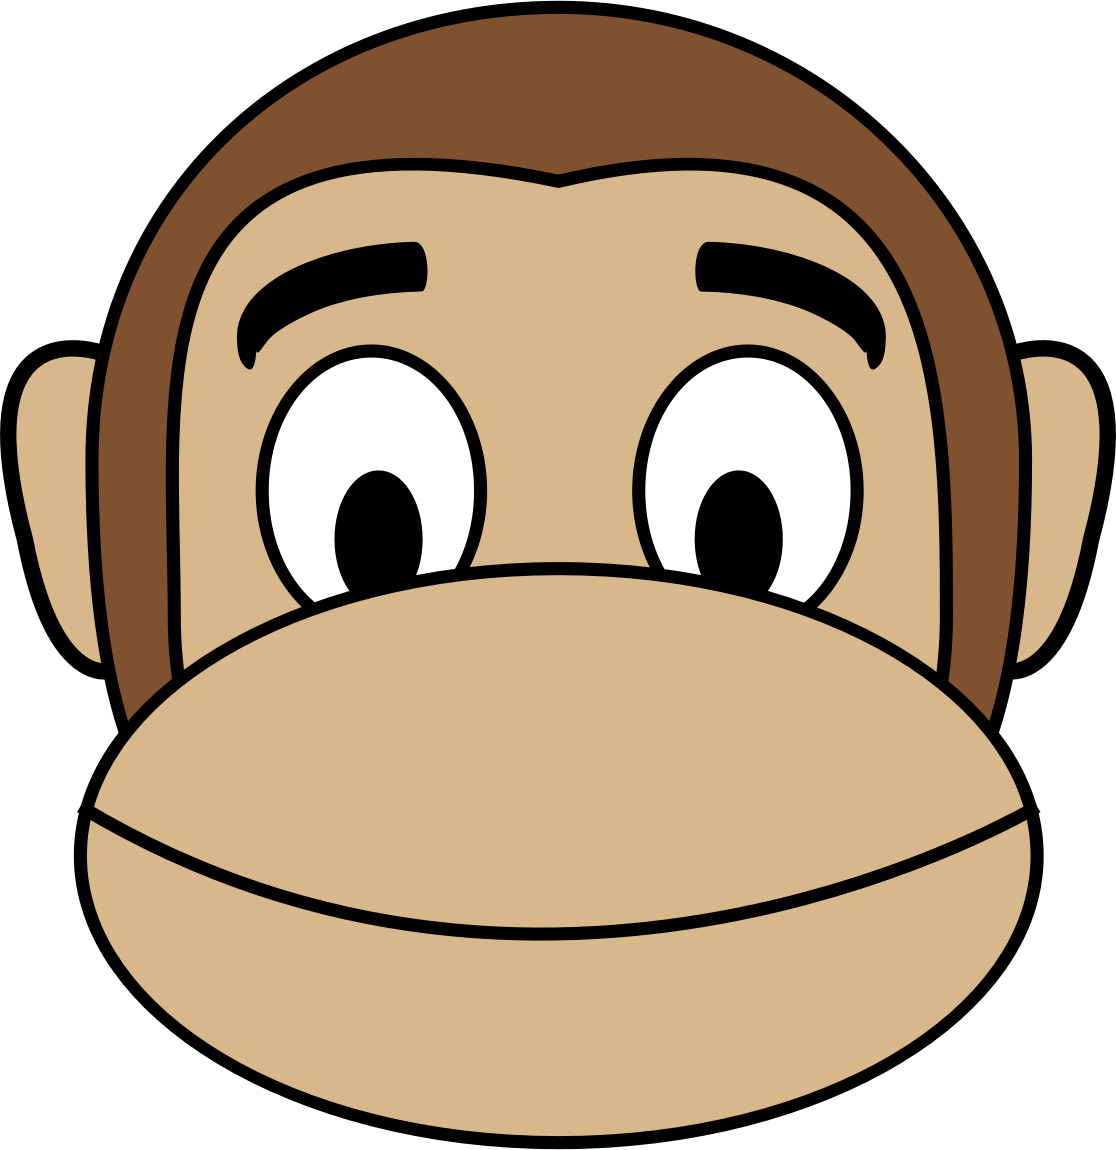 Monkey Emoji - Smile by buzzbomb